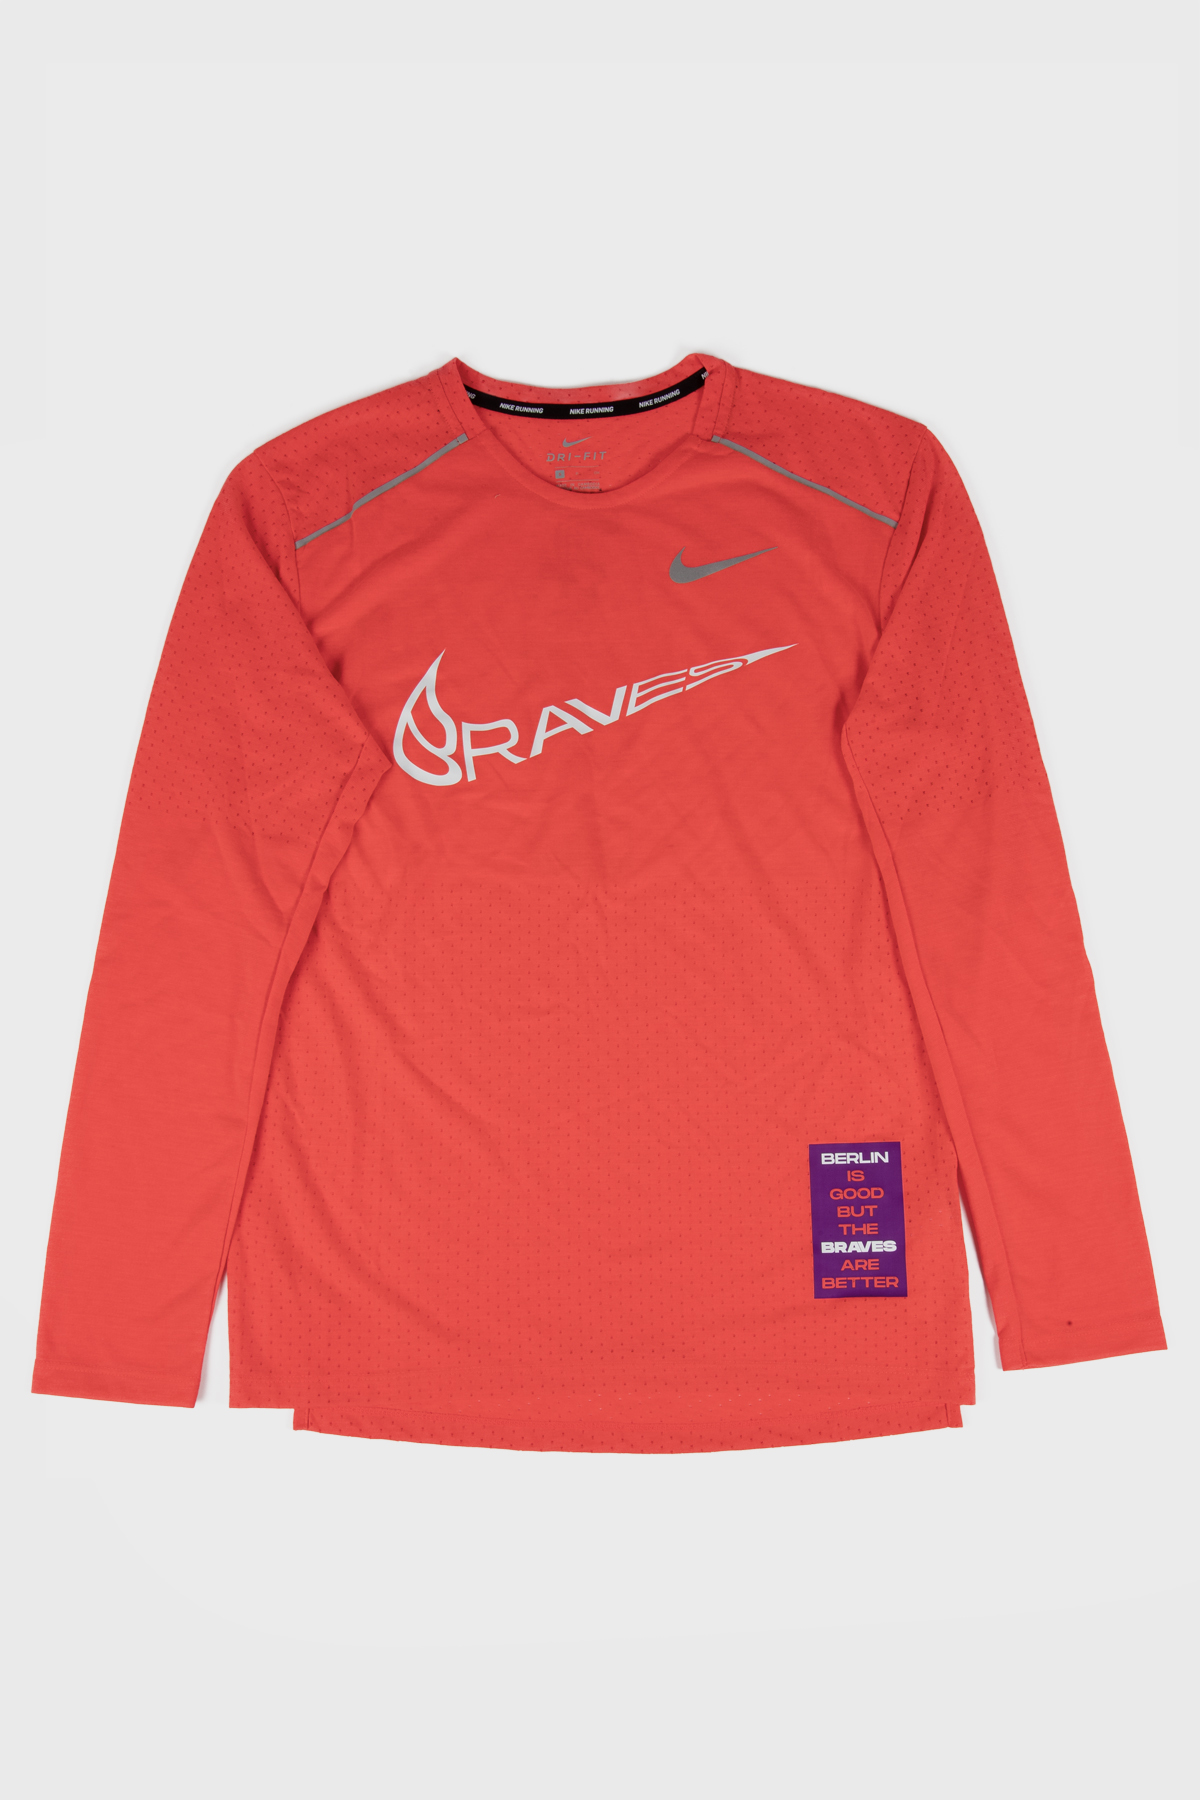 Berlin Braves - Nike Long Sleeve - Red